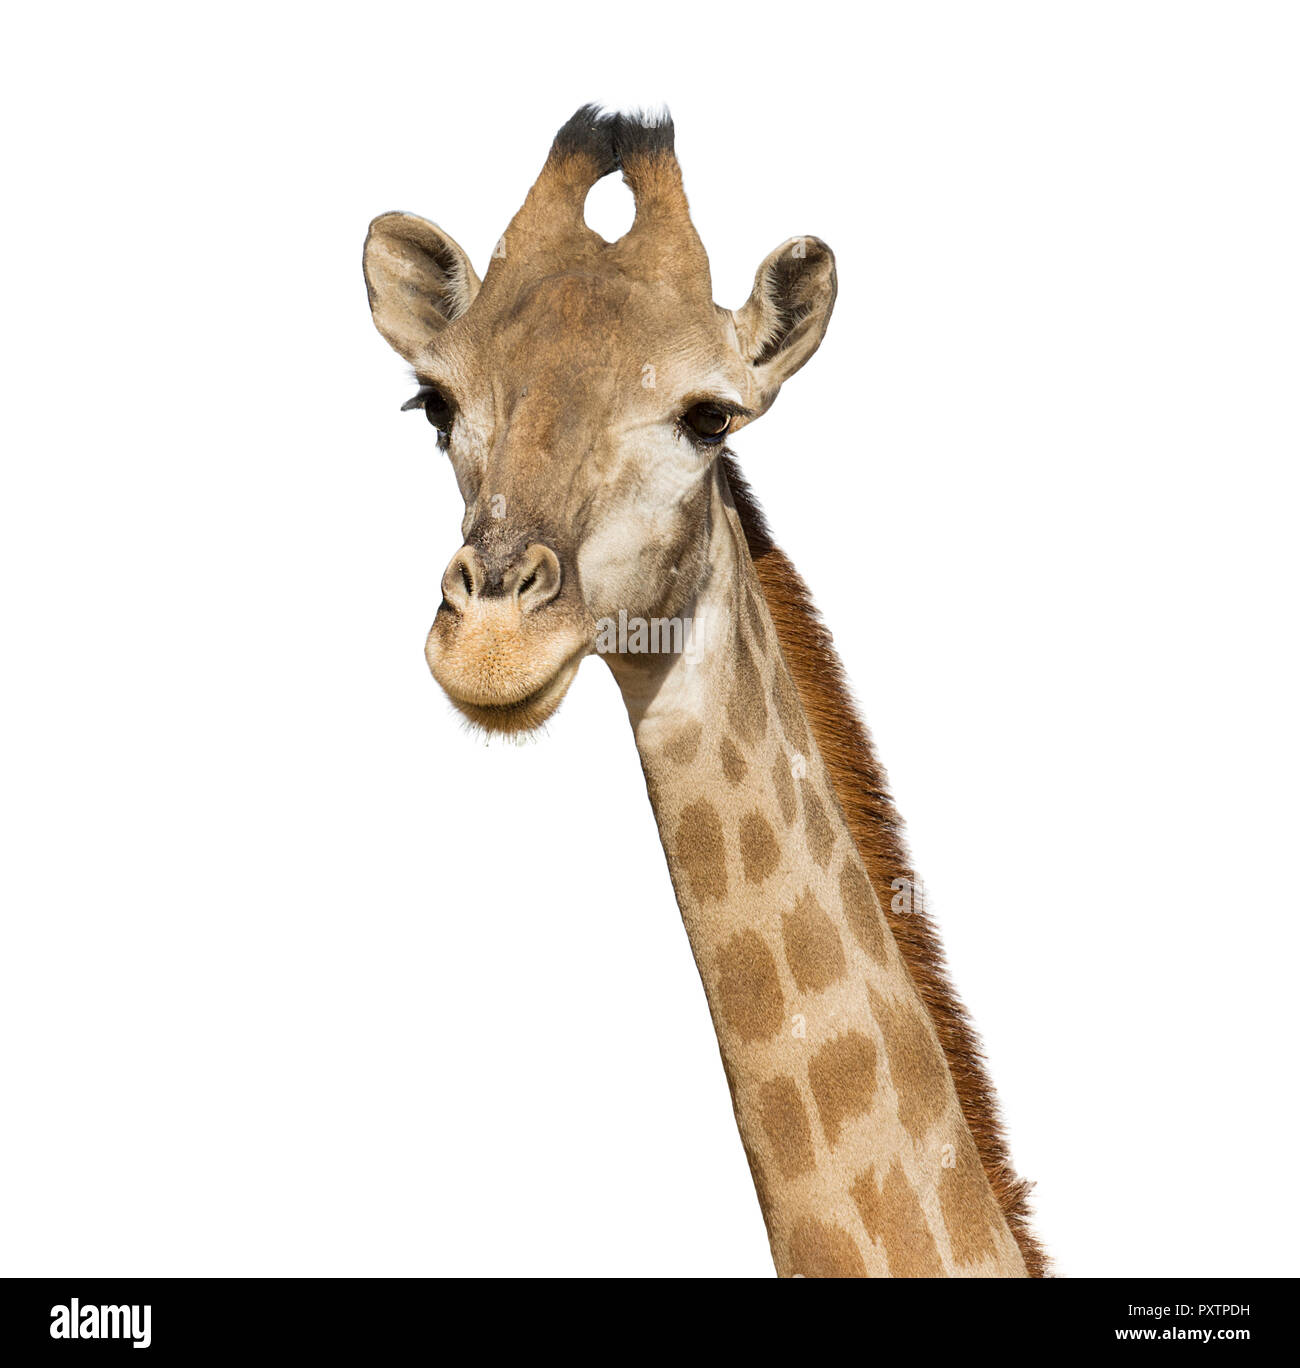 giraffe head isolated on white background, a large African mammal with a very long neck and forelegs, having a coat patterned with brown patches separ Stock Photo